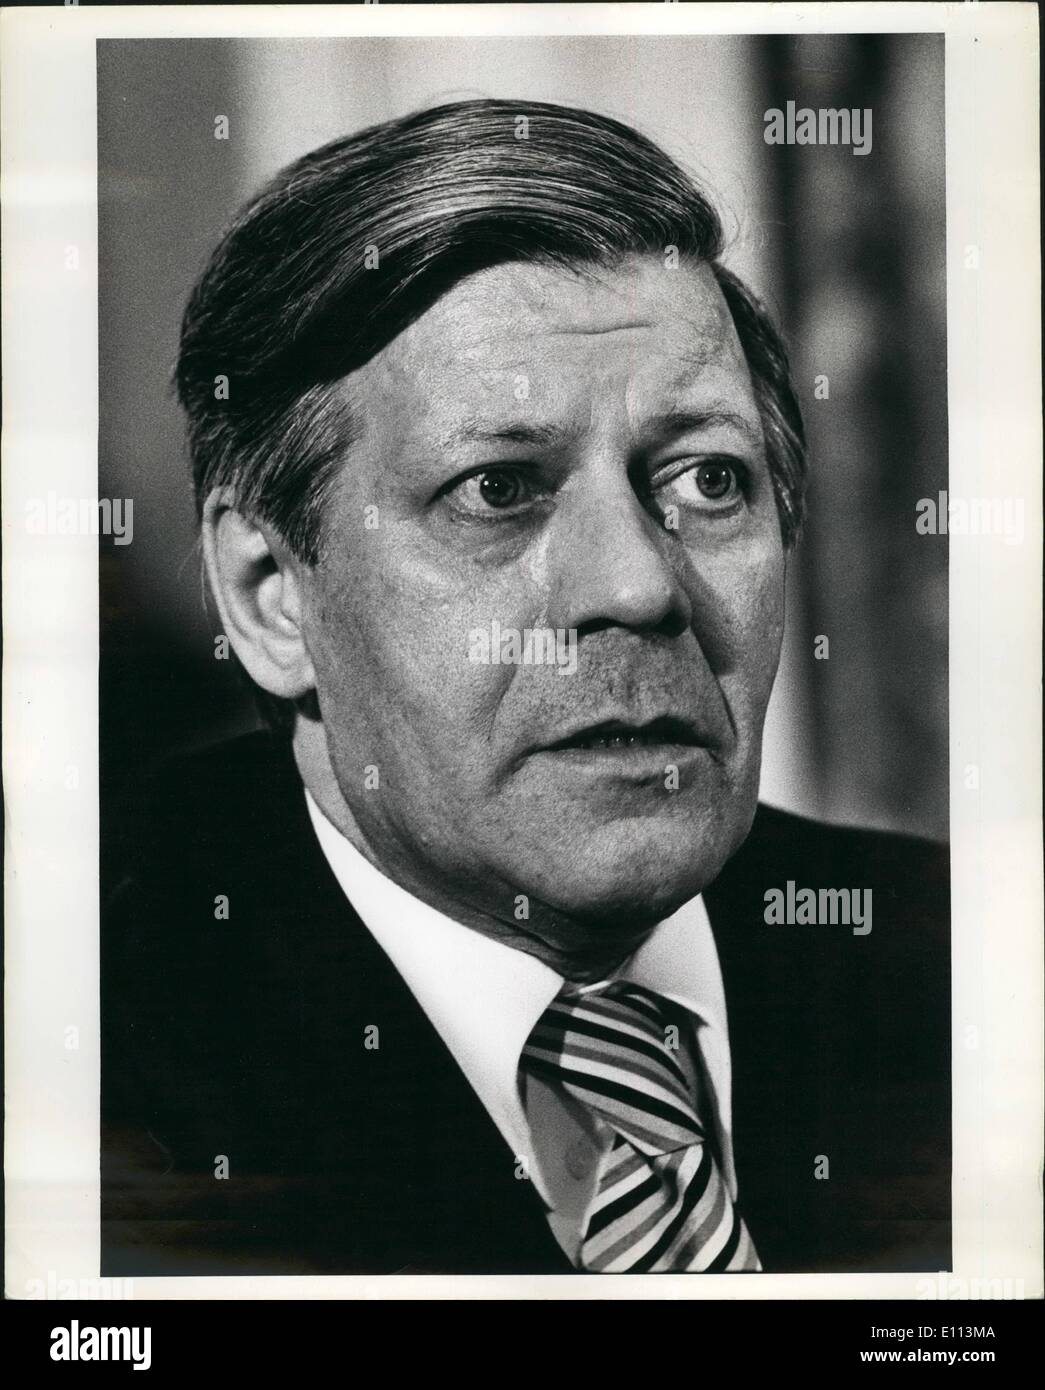 10 octobre 1975 - Helmut Schmidt, chancelier de la Fed. Rép. de l'Allemagne lors de la vs conseil de la Chambre de Commerce Internationale séance à l'hôtel Pierre à New York, 2 octobre 1975. Photo Stock